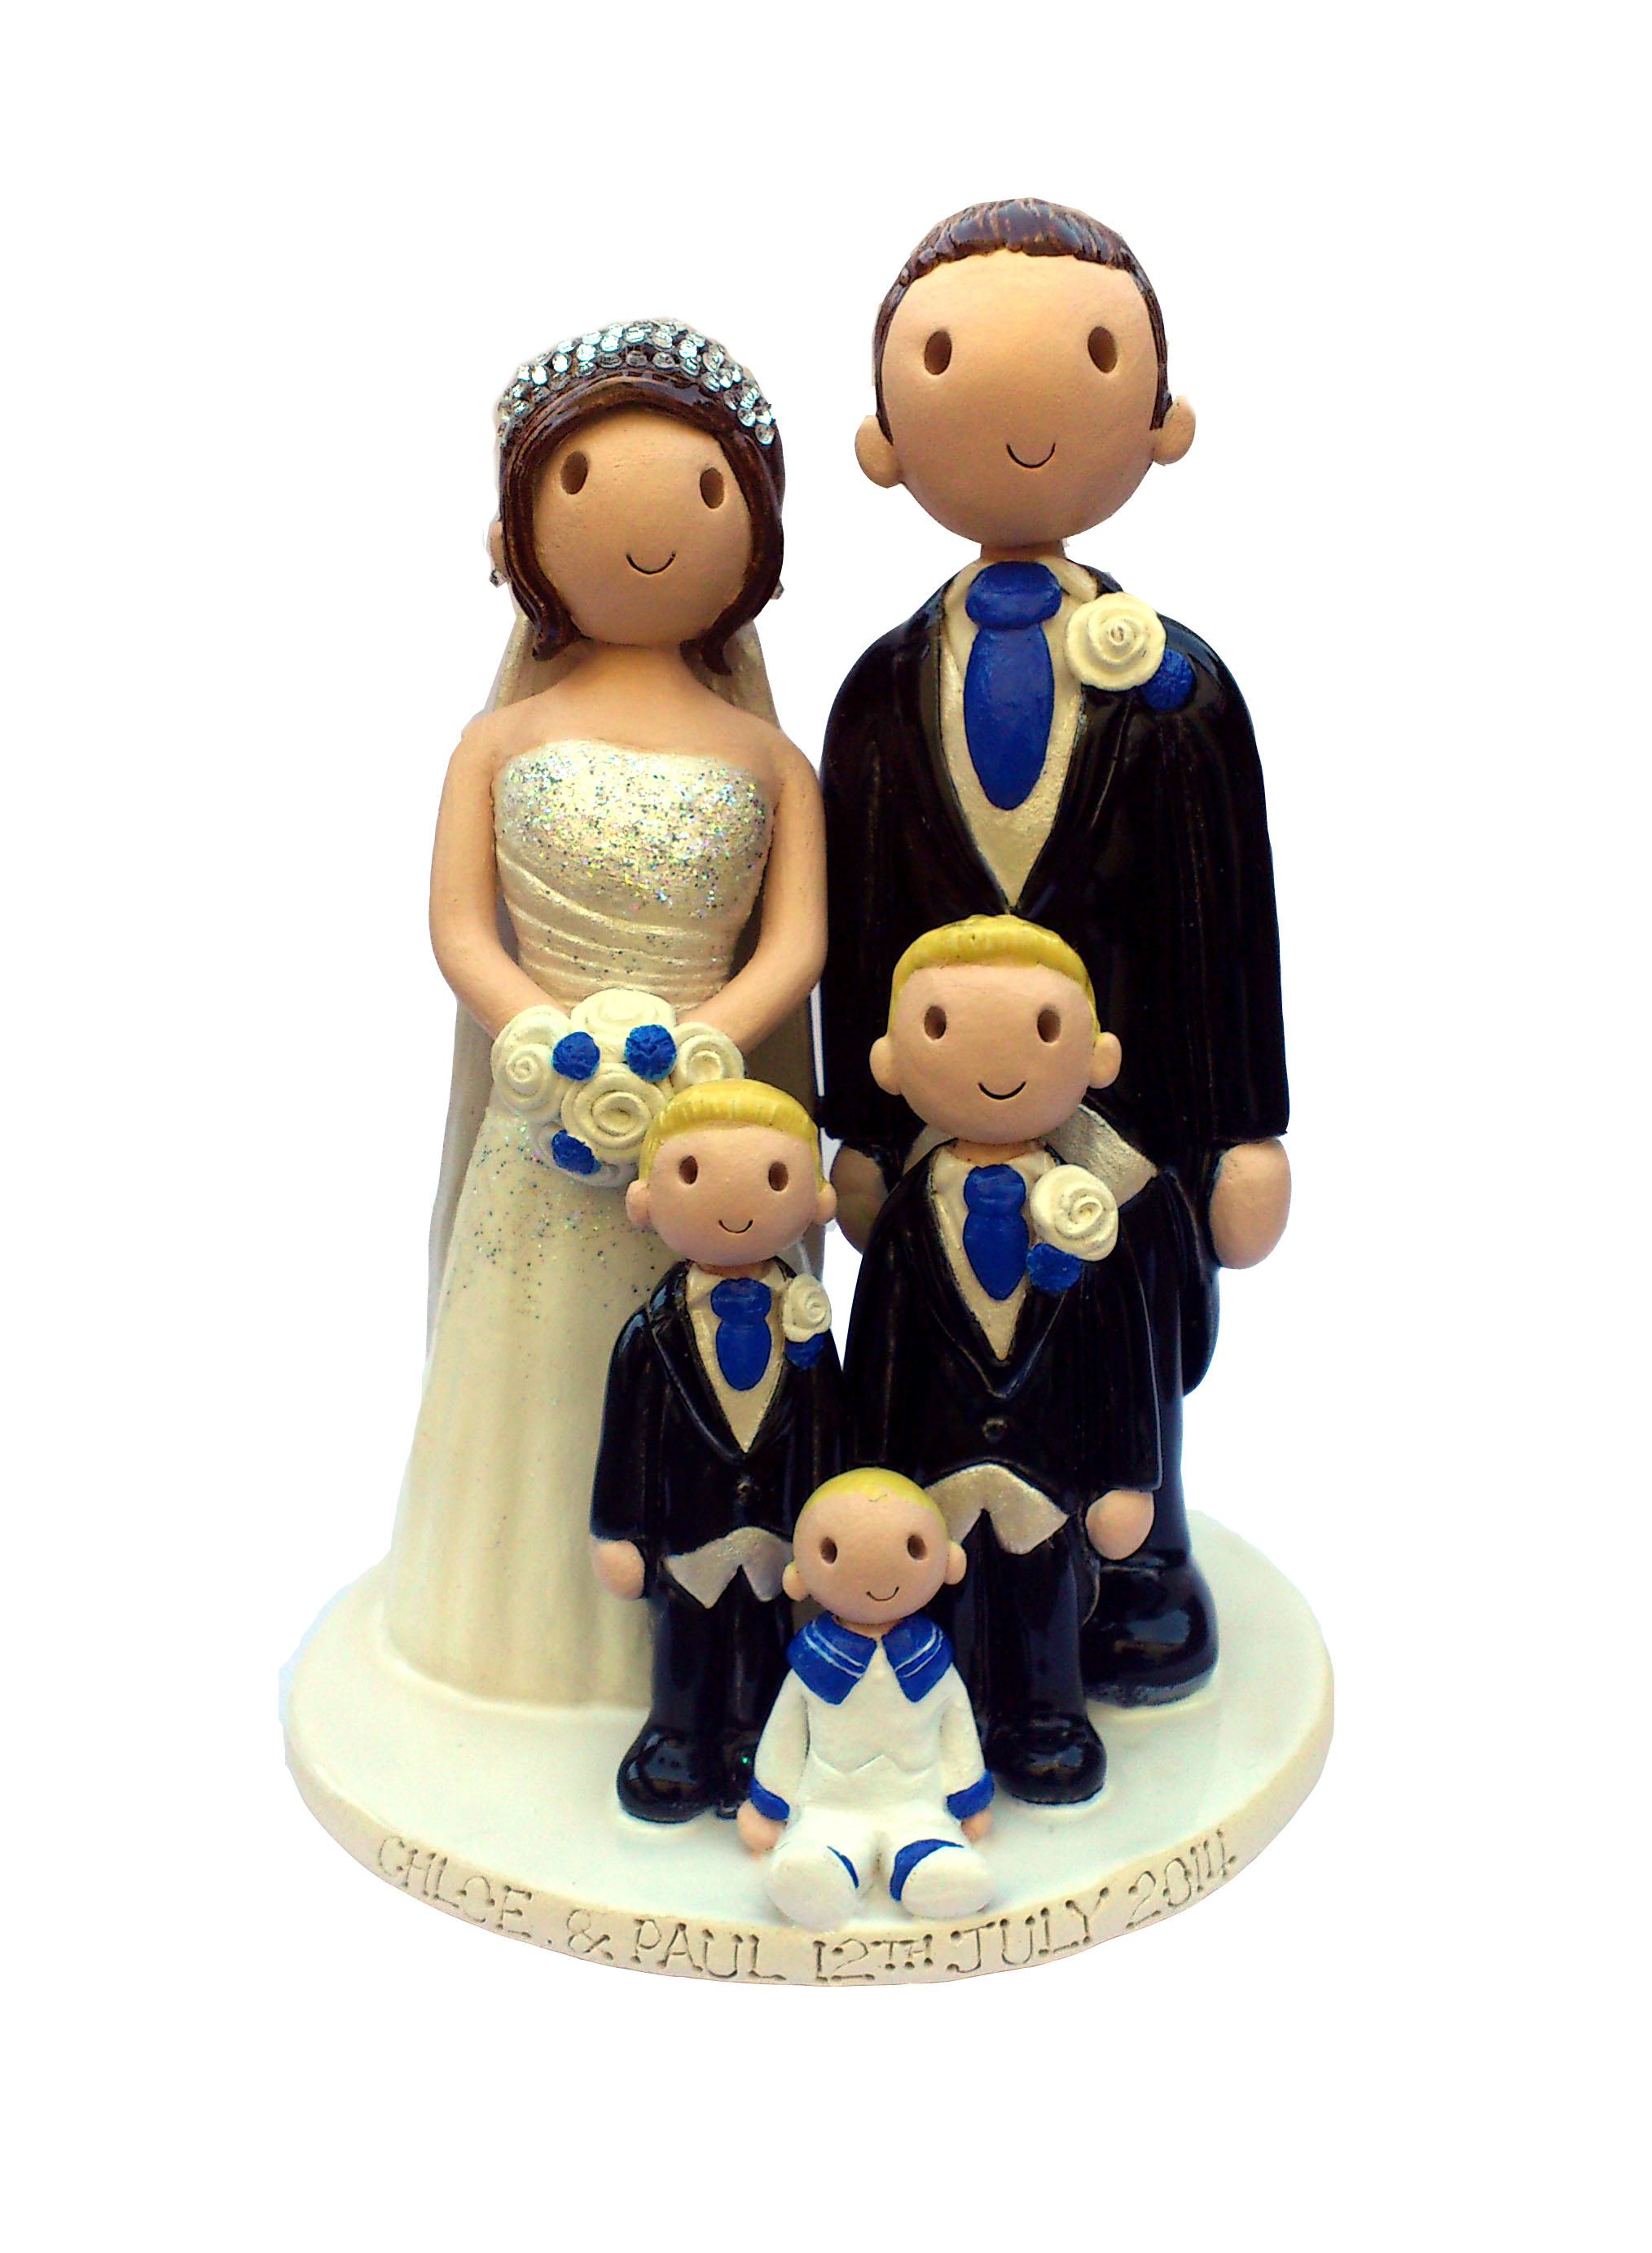 Cake Toppers Cake : Wedding Cake Toppers. Hand Made Personalised Wedding Cake ...